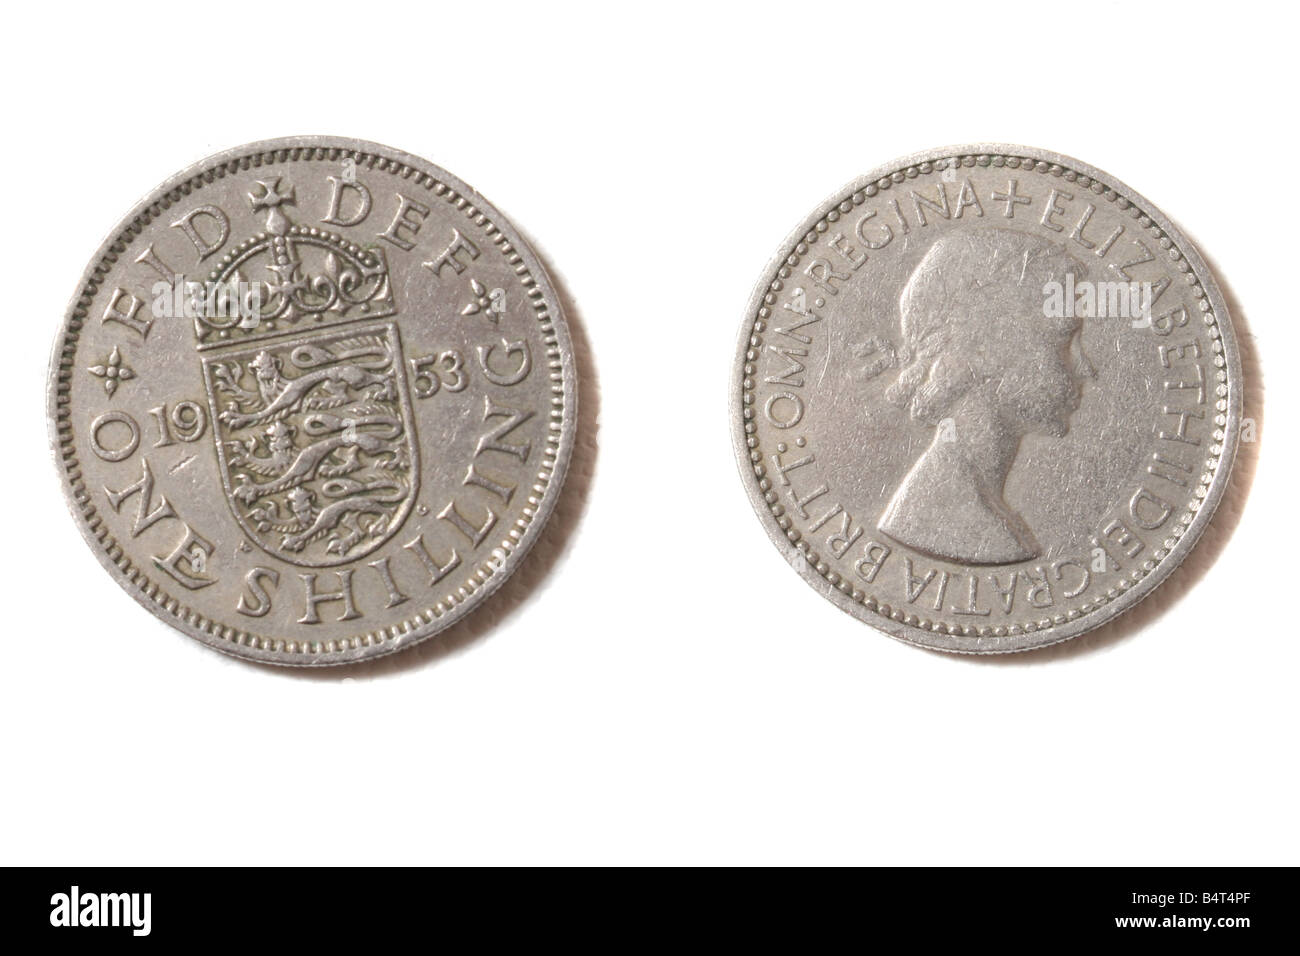 One Pence Coin Stock Photos Amp One Pence Coin Stock Images